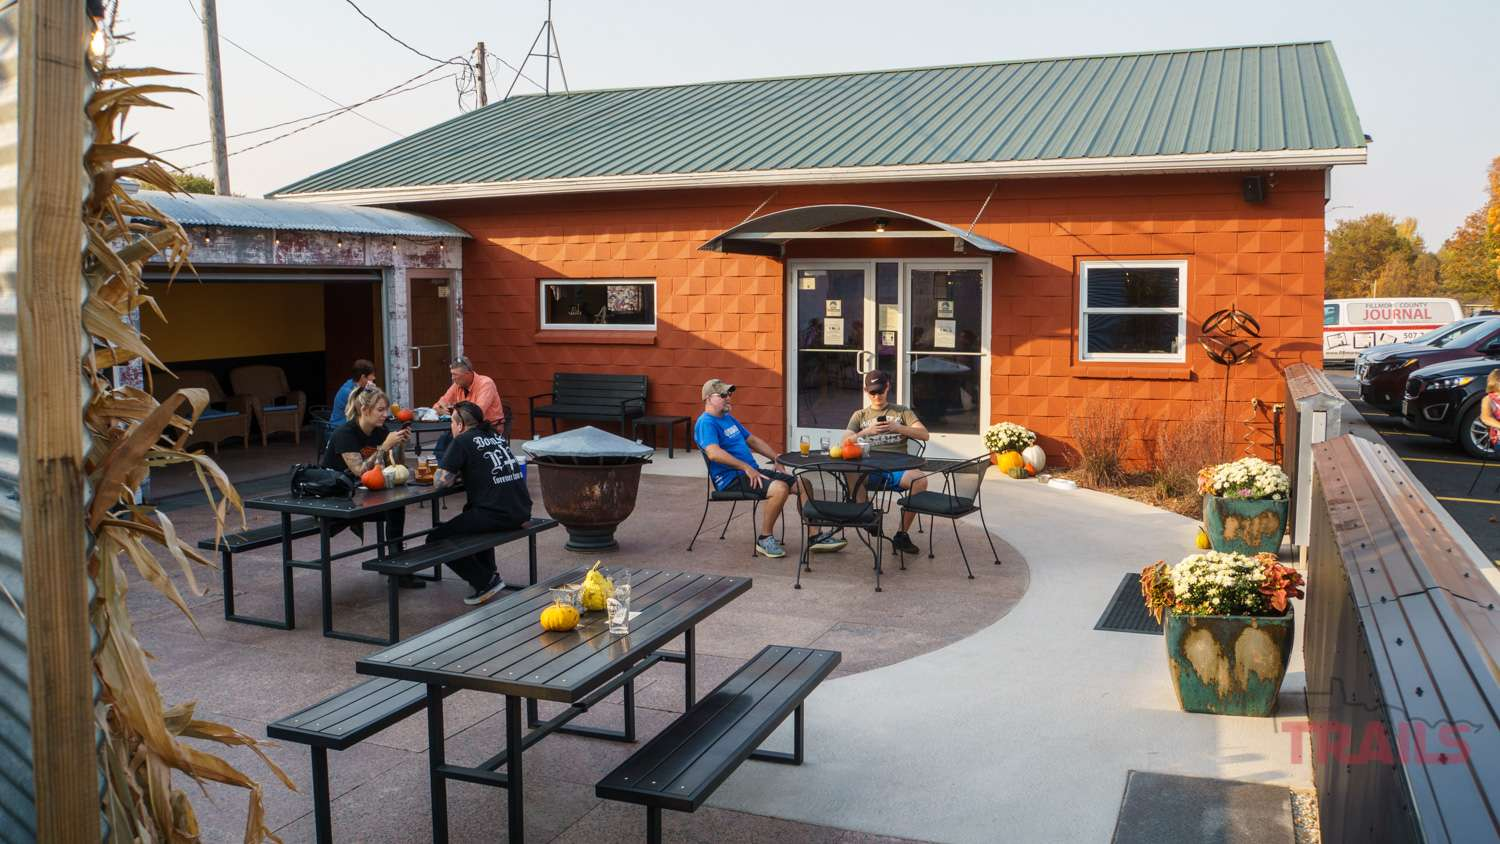 Patrons drinking beer on a patio